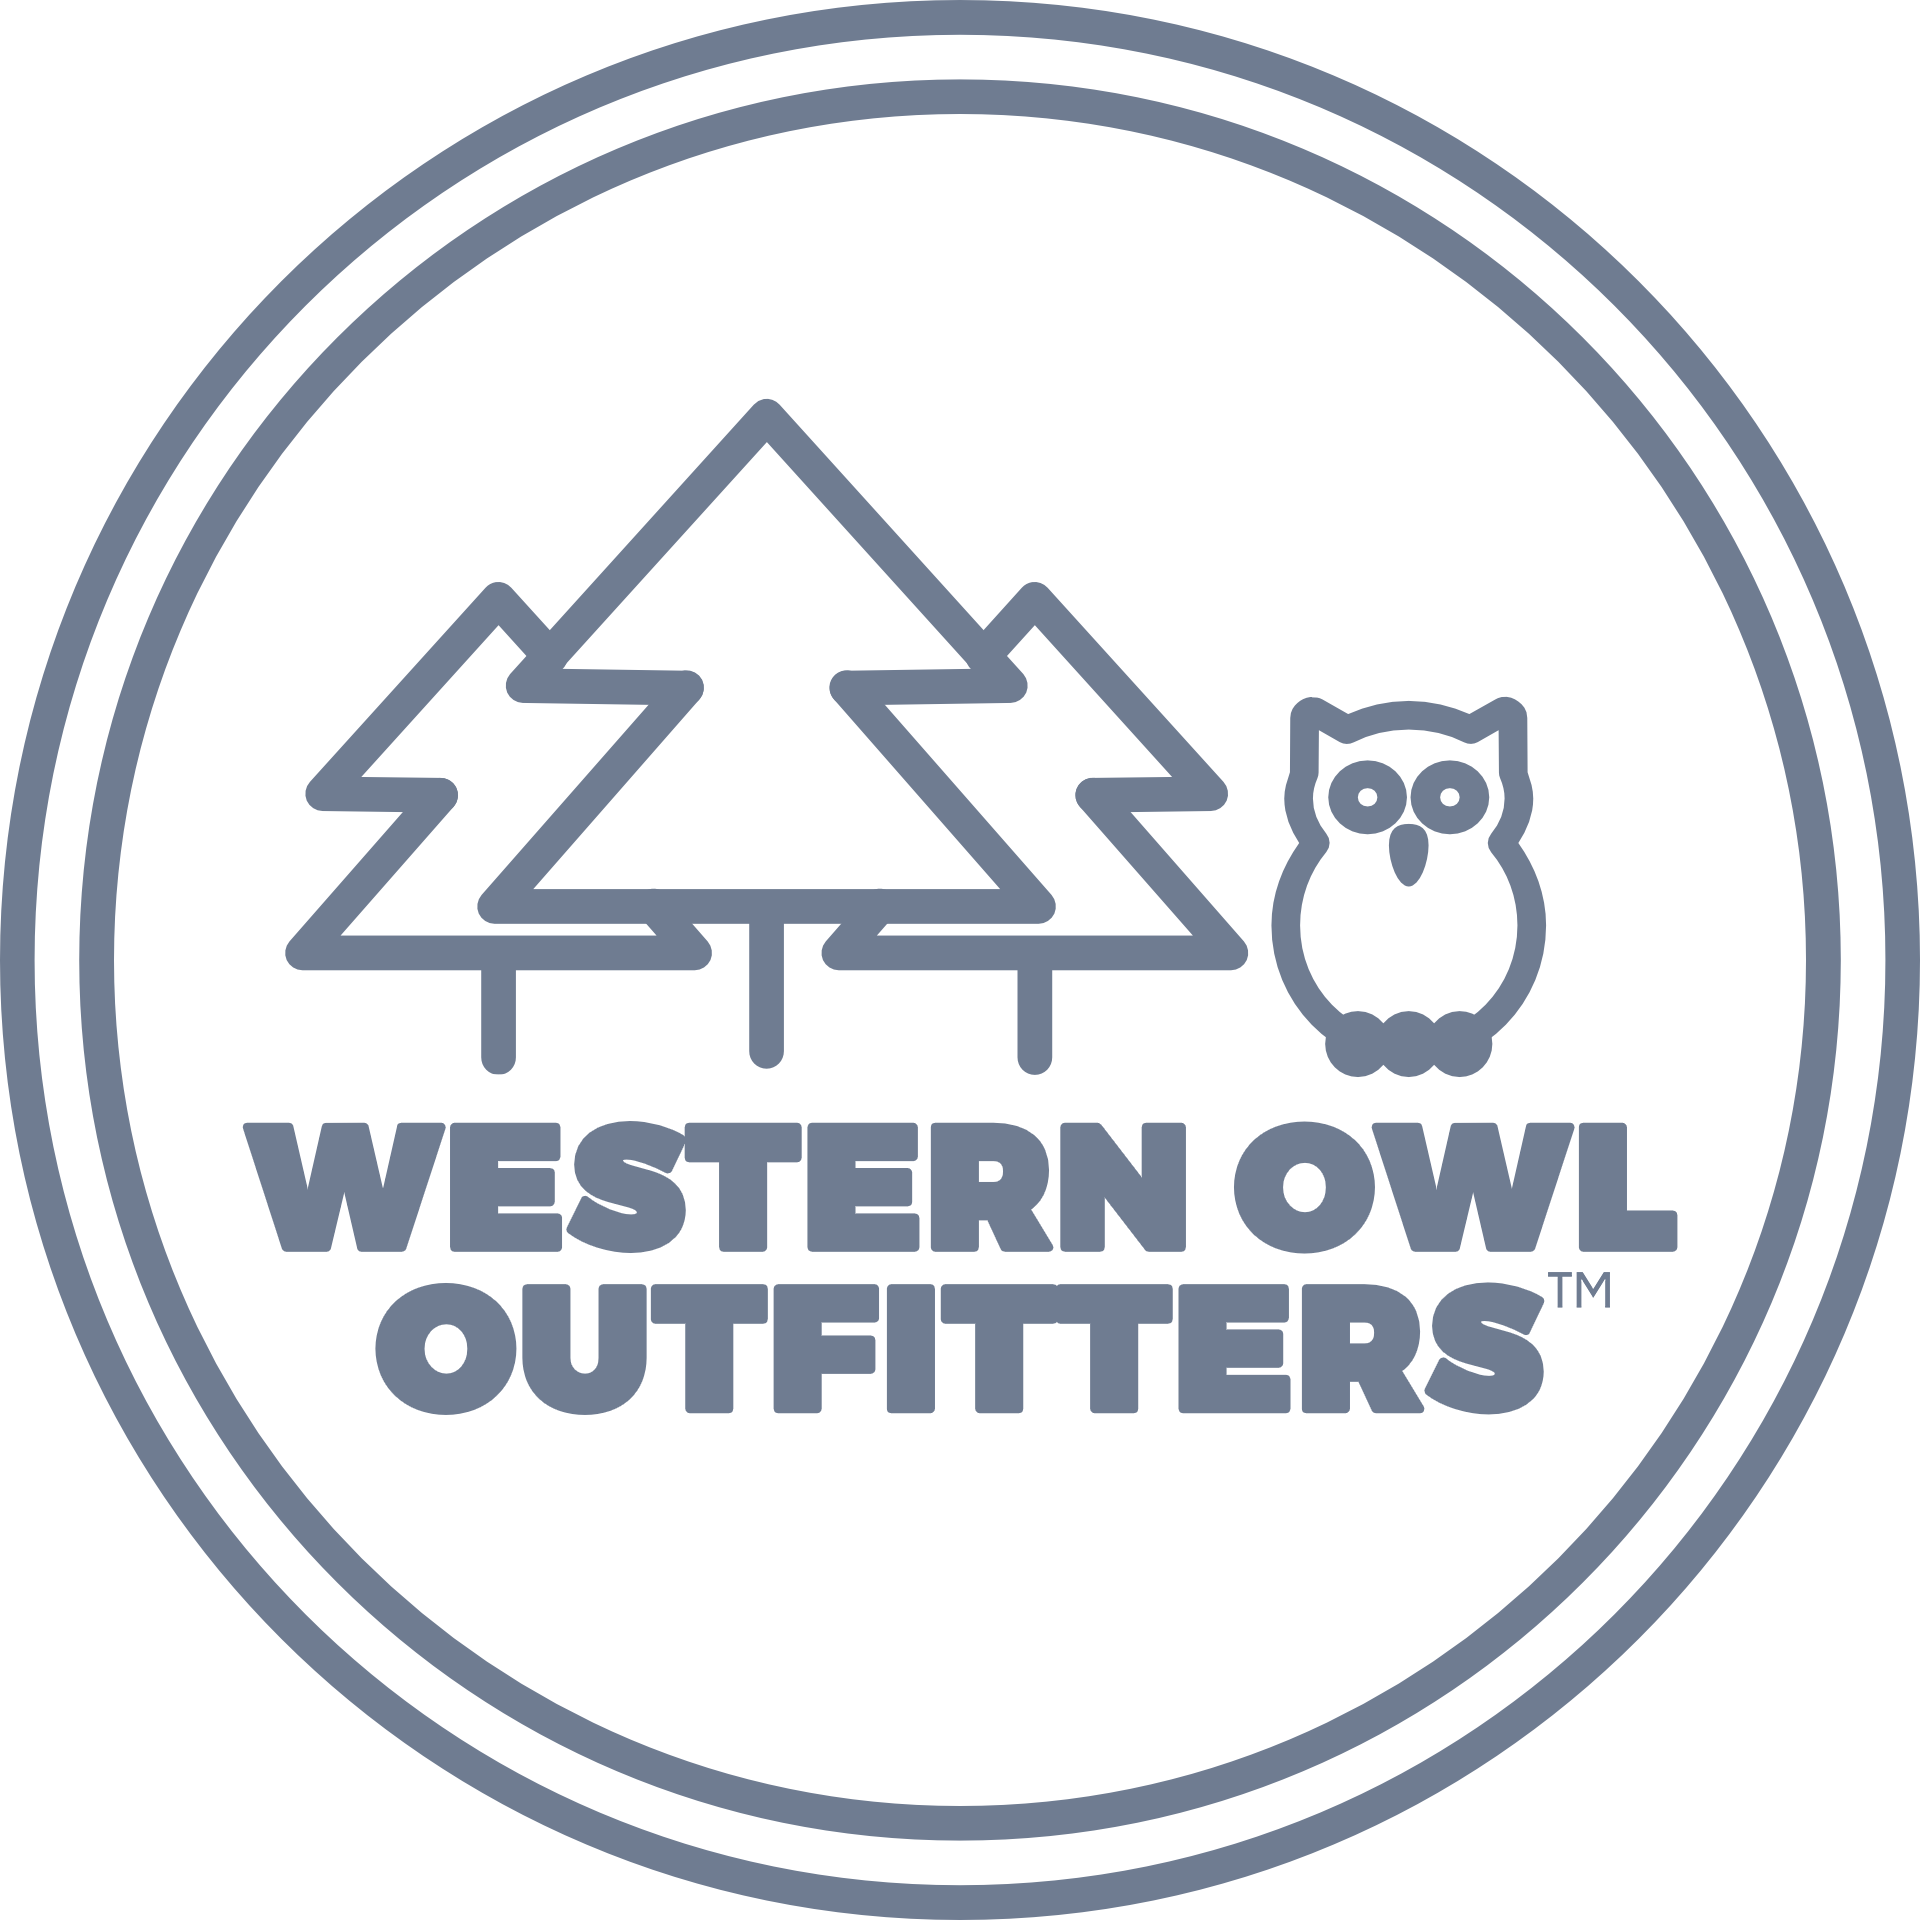 Western Owl Outfitters